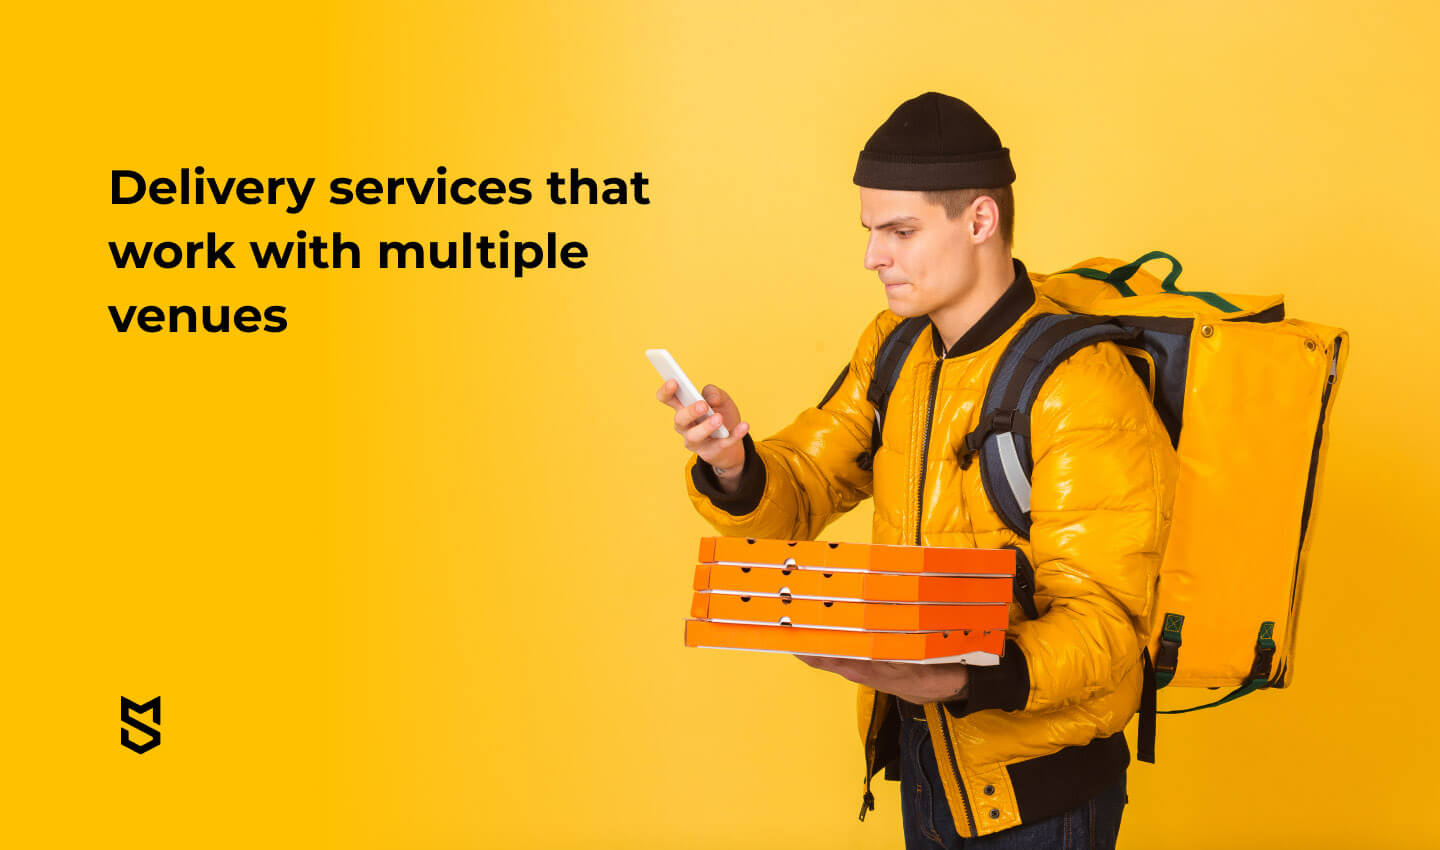 Delivery services that work with multiple venues